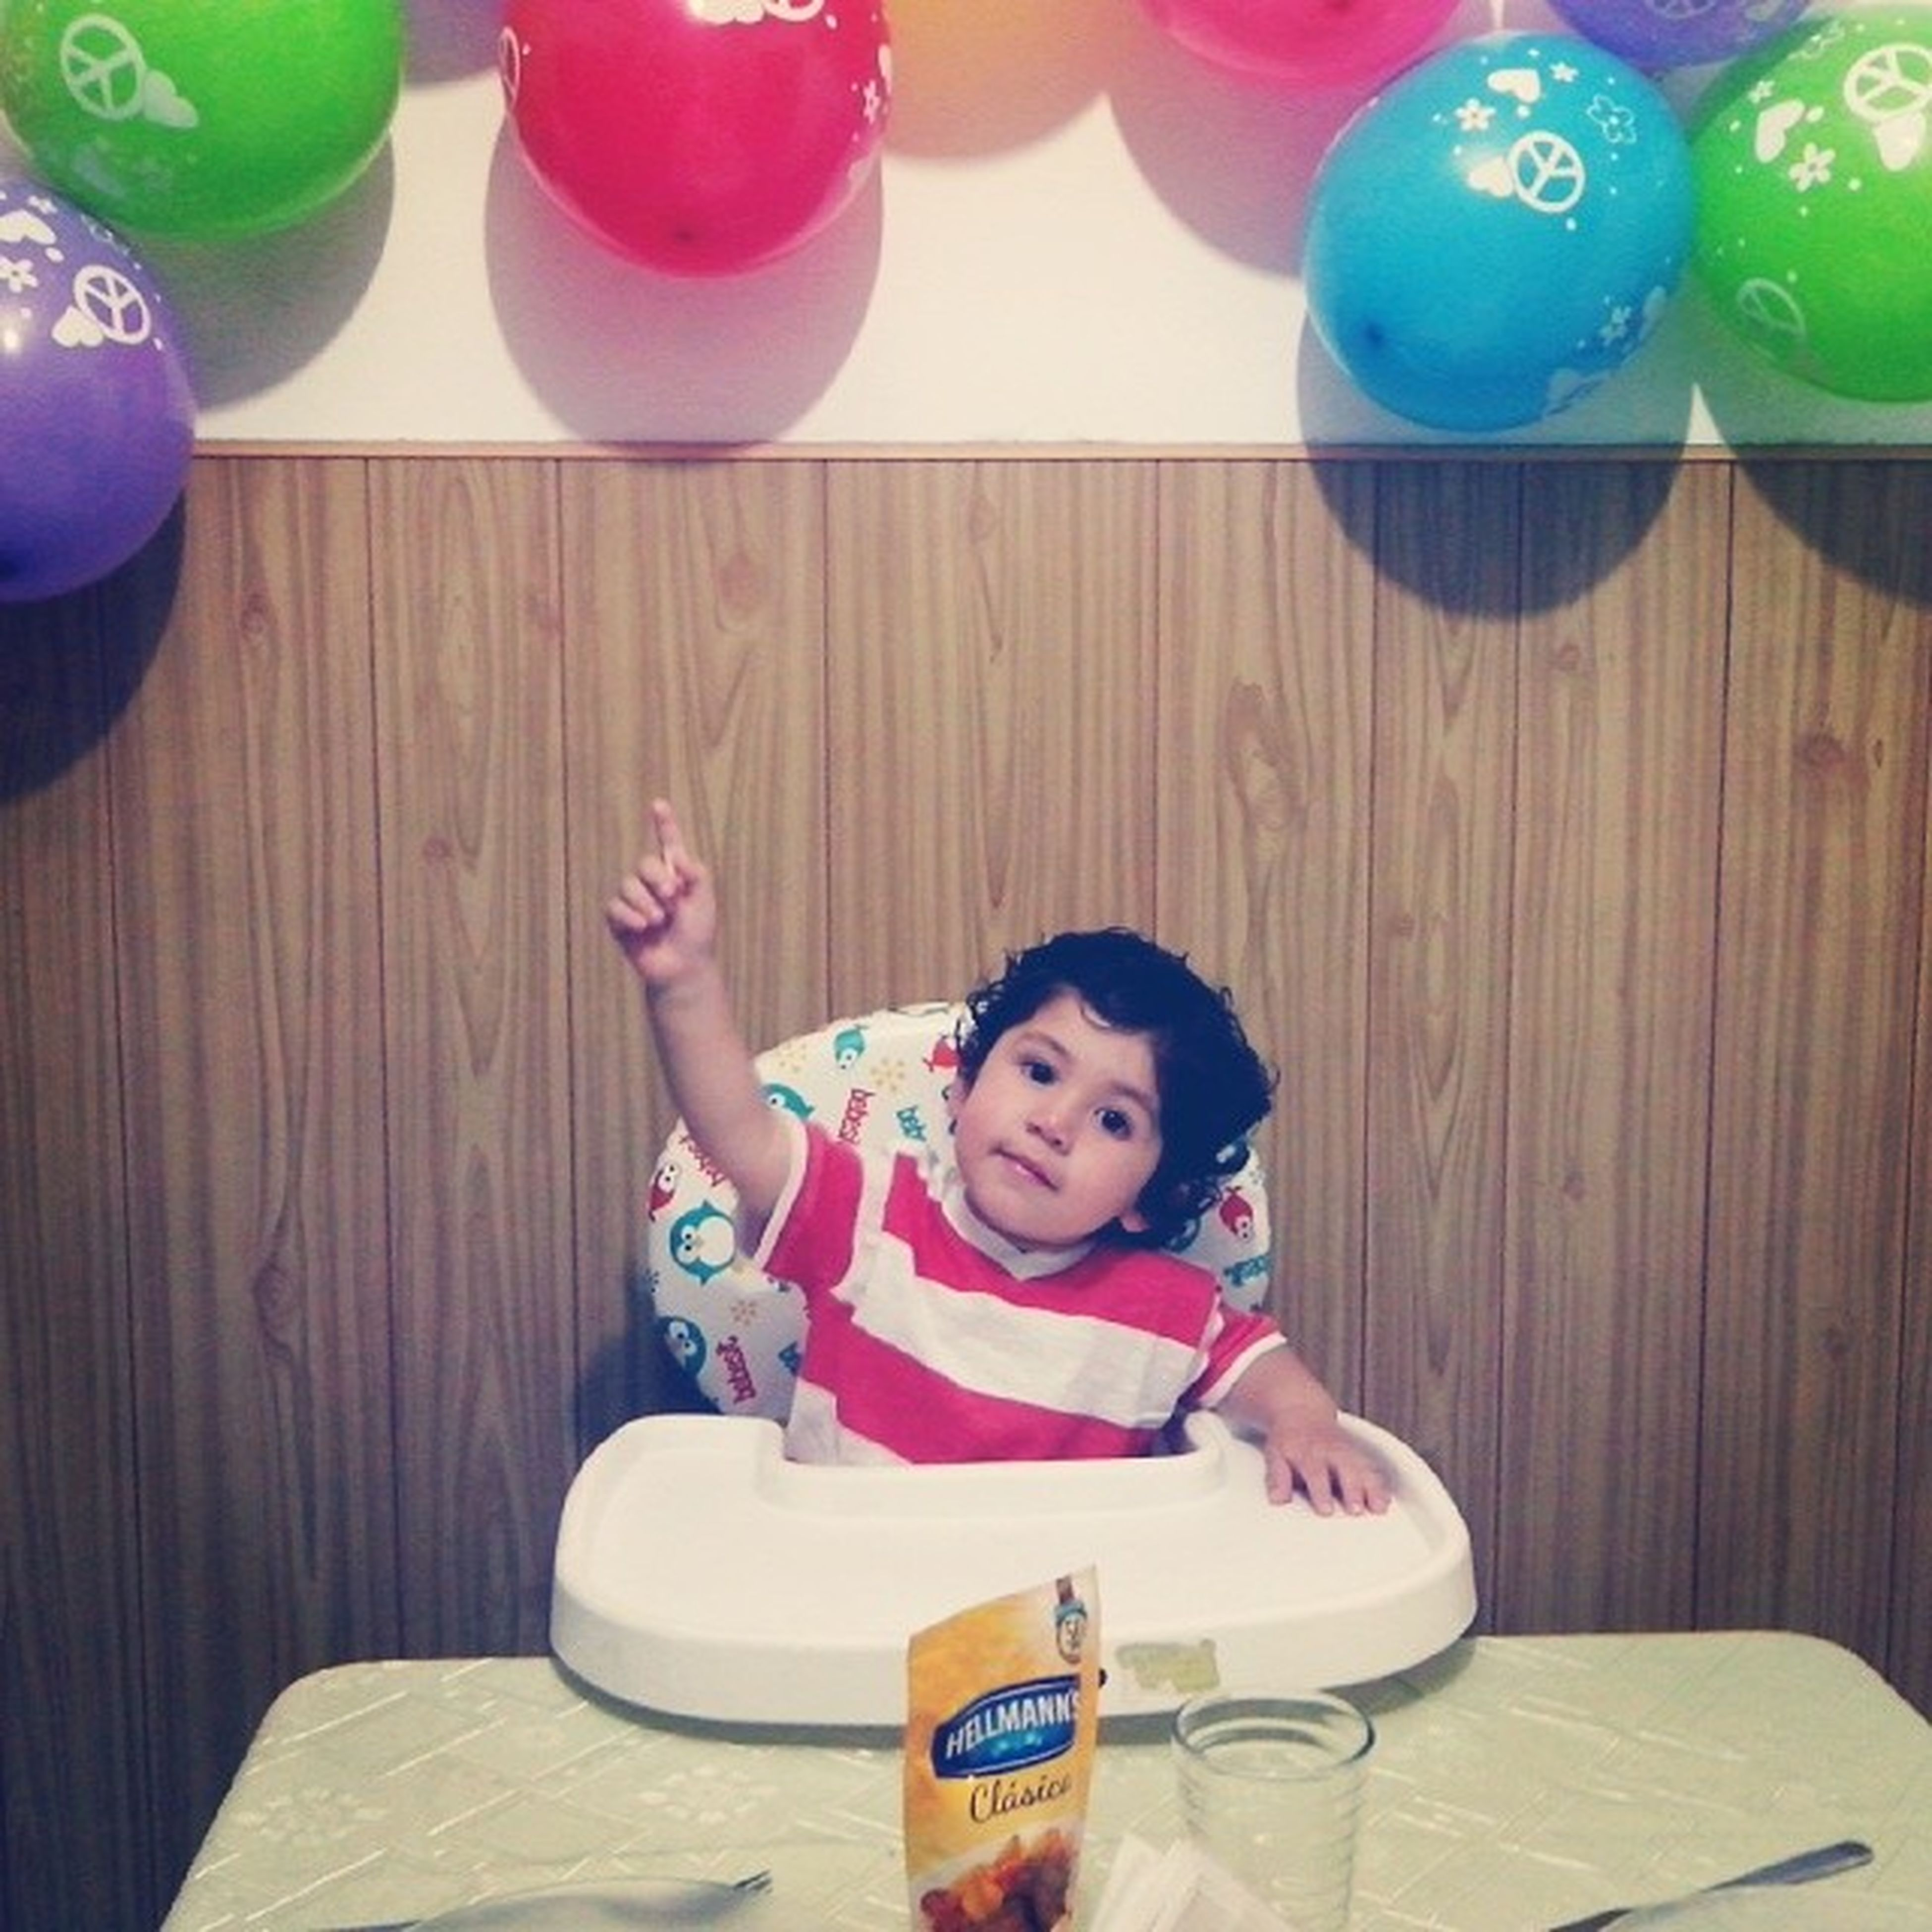 childhood, elementary age, indoors, girls, innocence, person, cute, boys, leisure activity, lifestyles, table, happiness, casual clothing, smiling, high angle view, food and drink, looking at camera, portrait